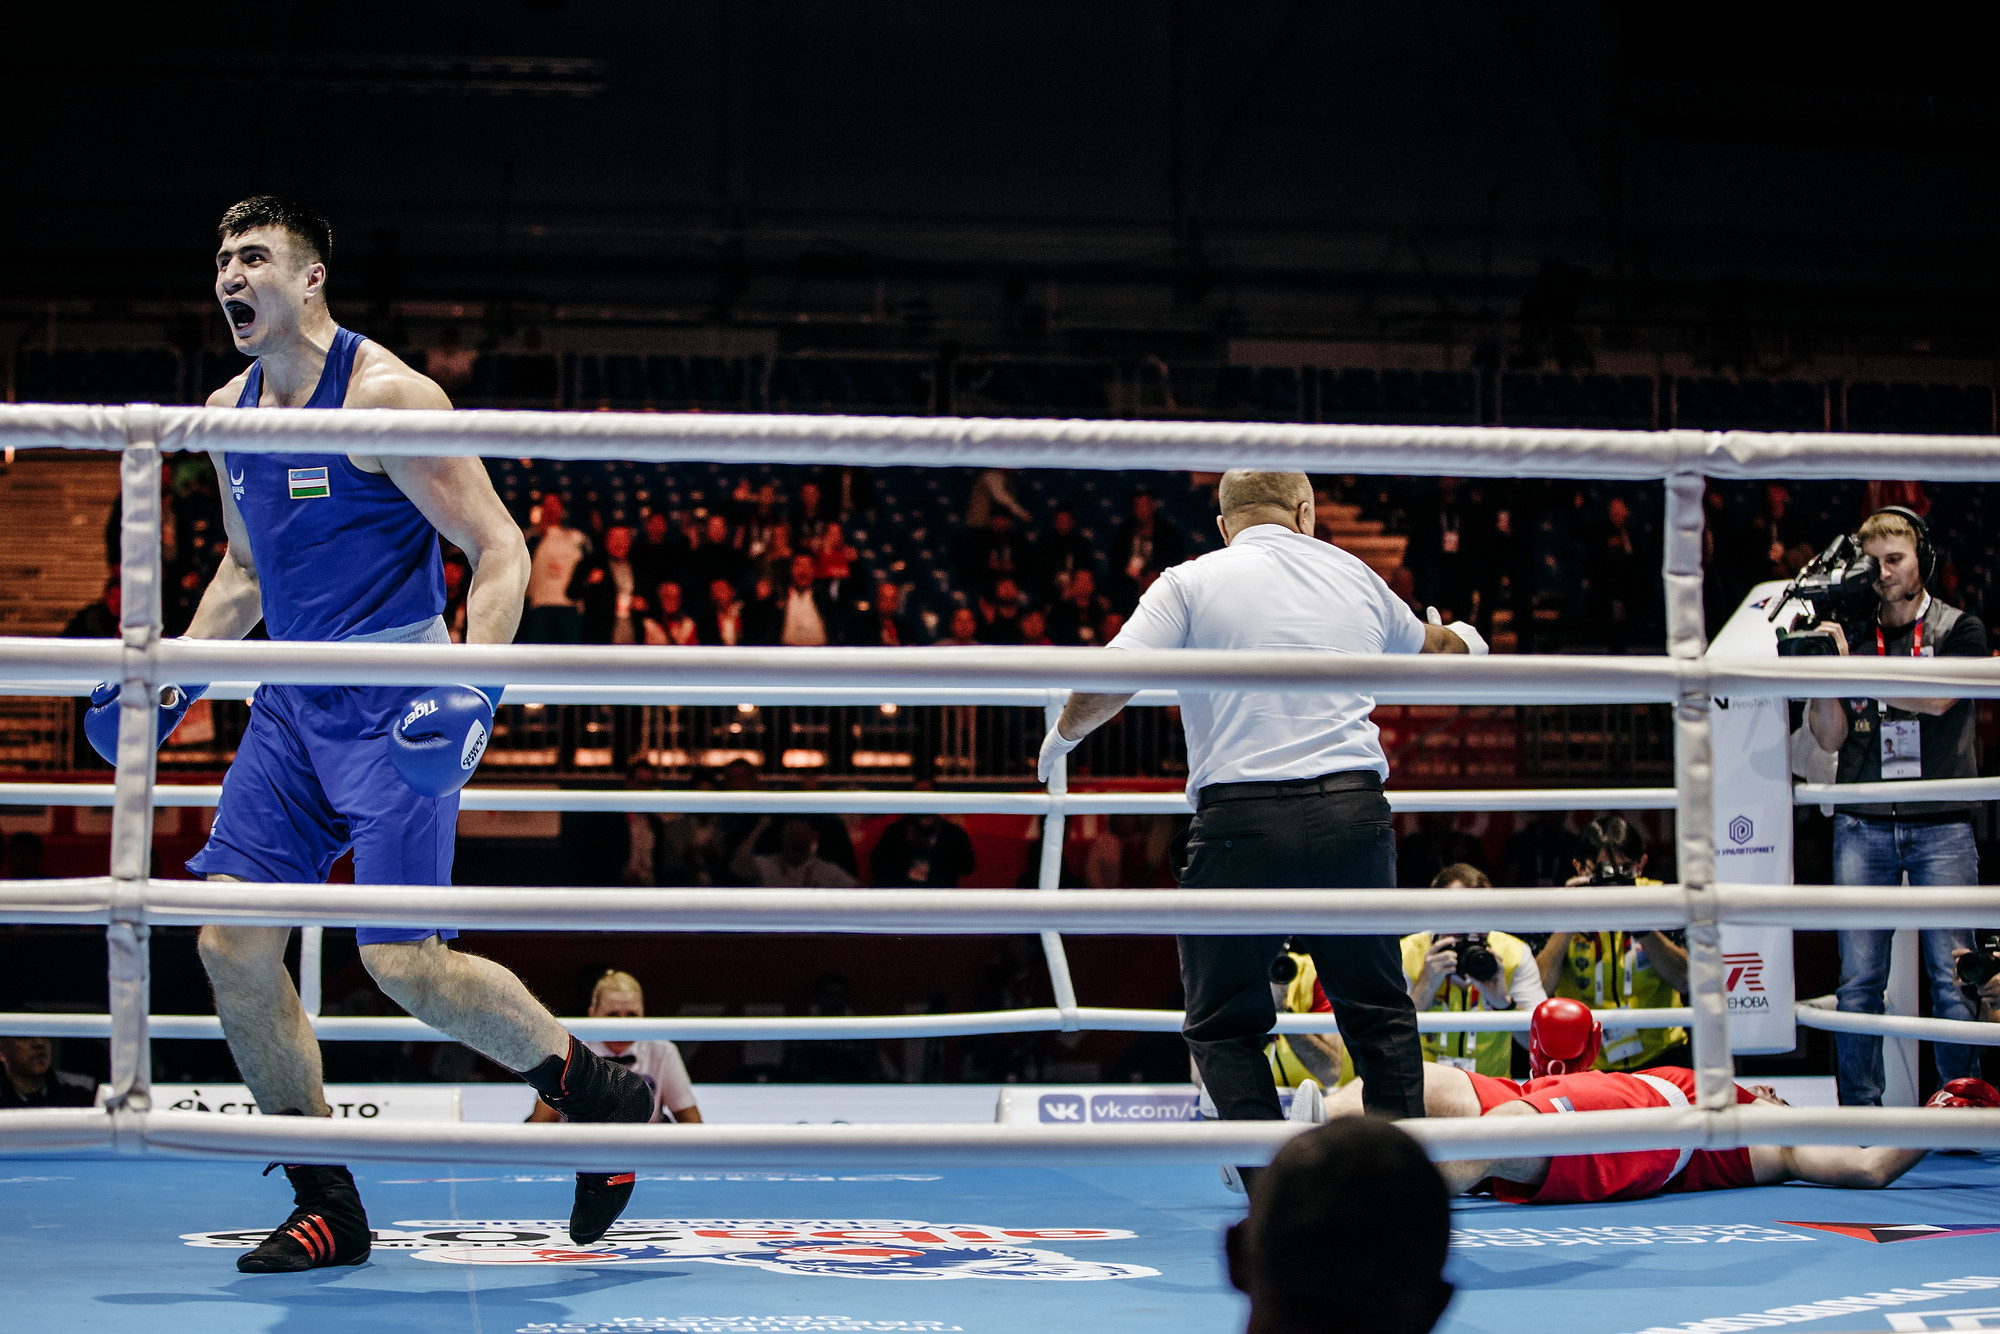 The Uzbek boxer delivered a knockout blow to Torrez to claim the victory ©Yekaterinburg 2019